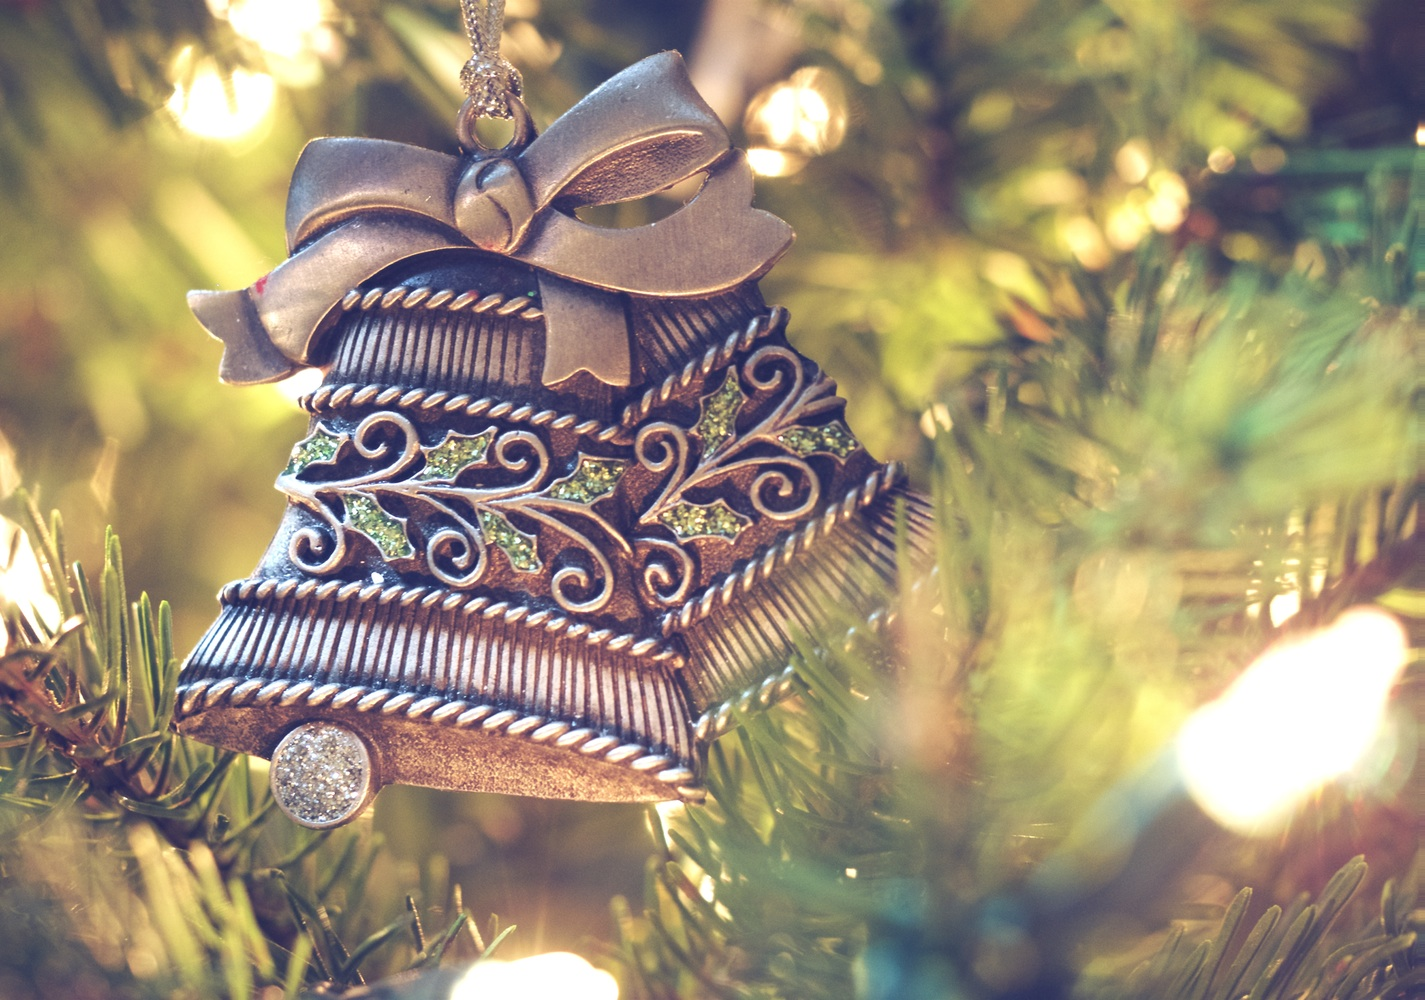 7 Things to Do Now to Prepare for a Stress-Free and Enjoyable Holiday Season